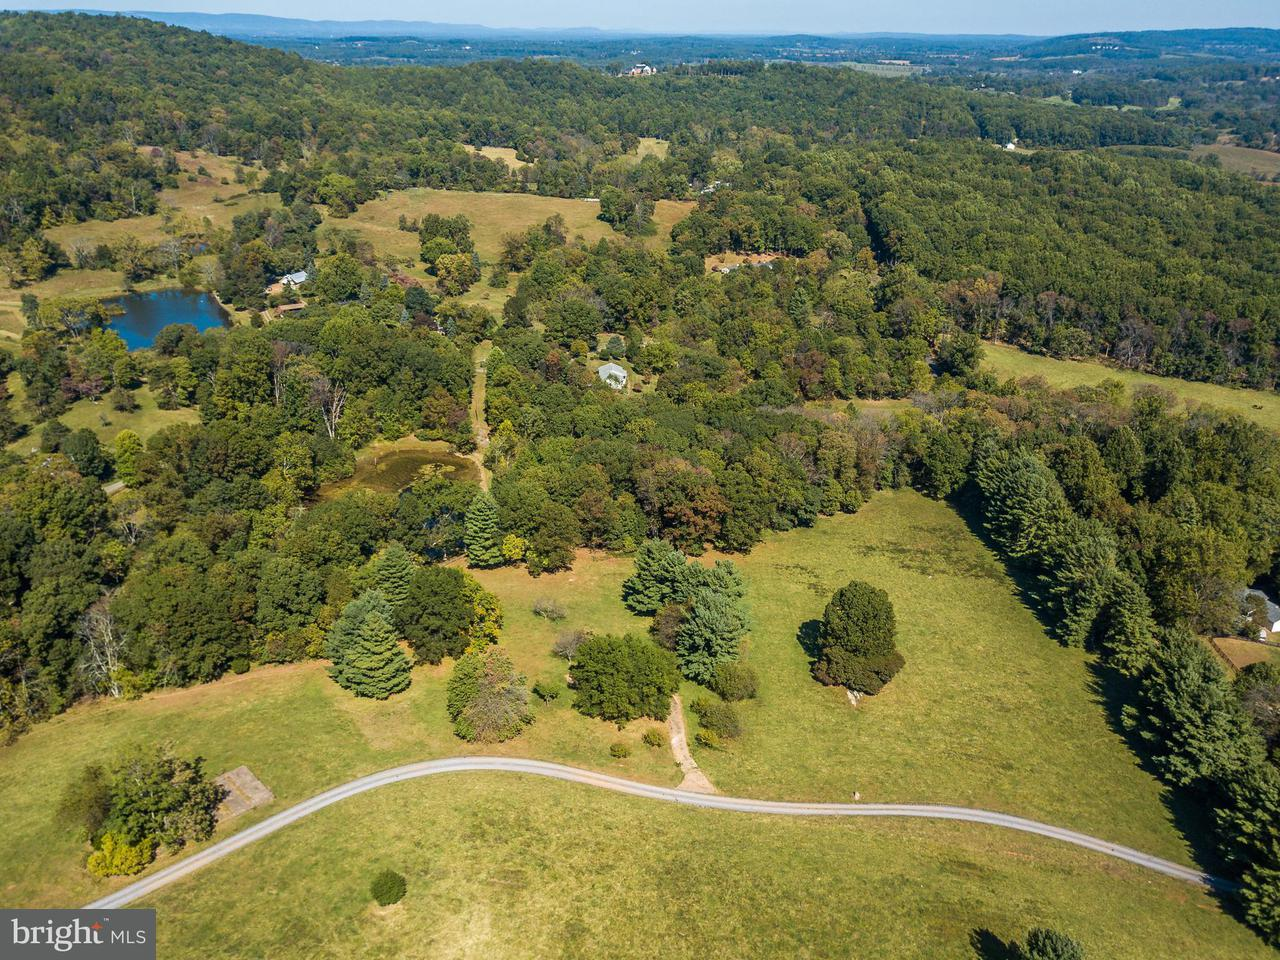 Land for Sale at 5634 MERRY OAKS Road 5634 MERRY OAKS Road The Plains, Virginia 20198 United States